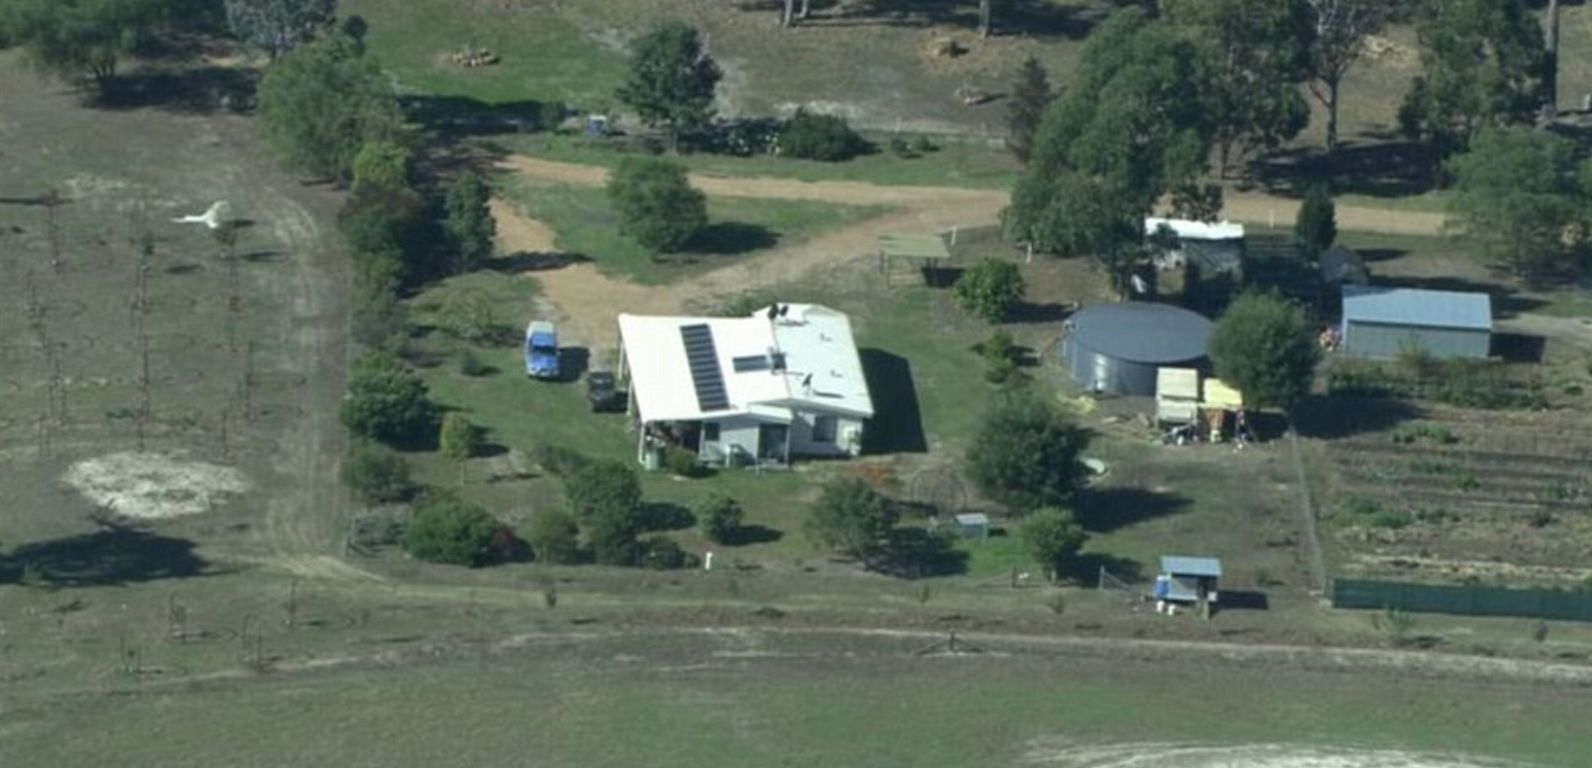 Australian Police Find 7 Dead At Rural Farm After Firearm